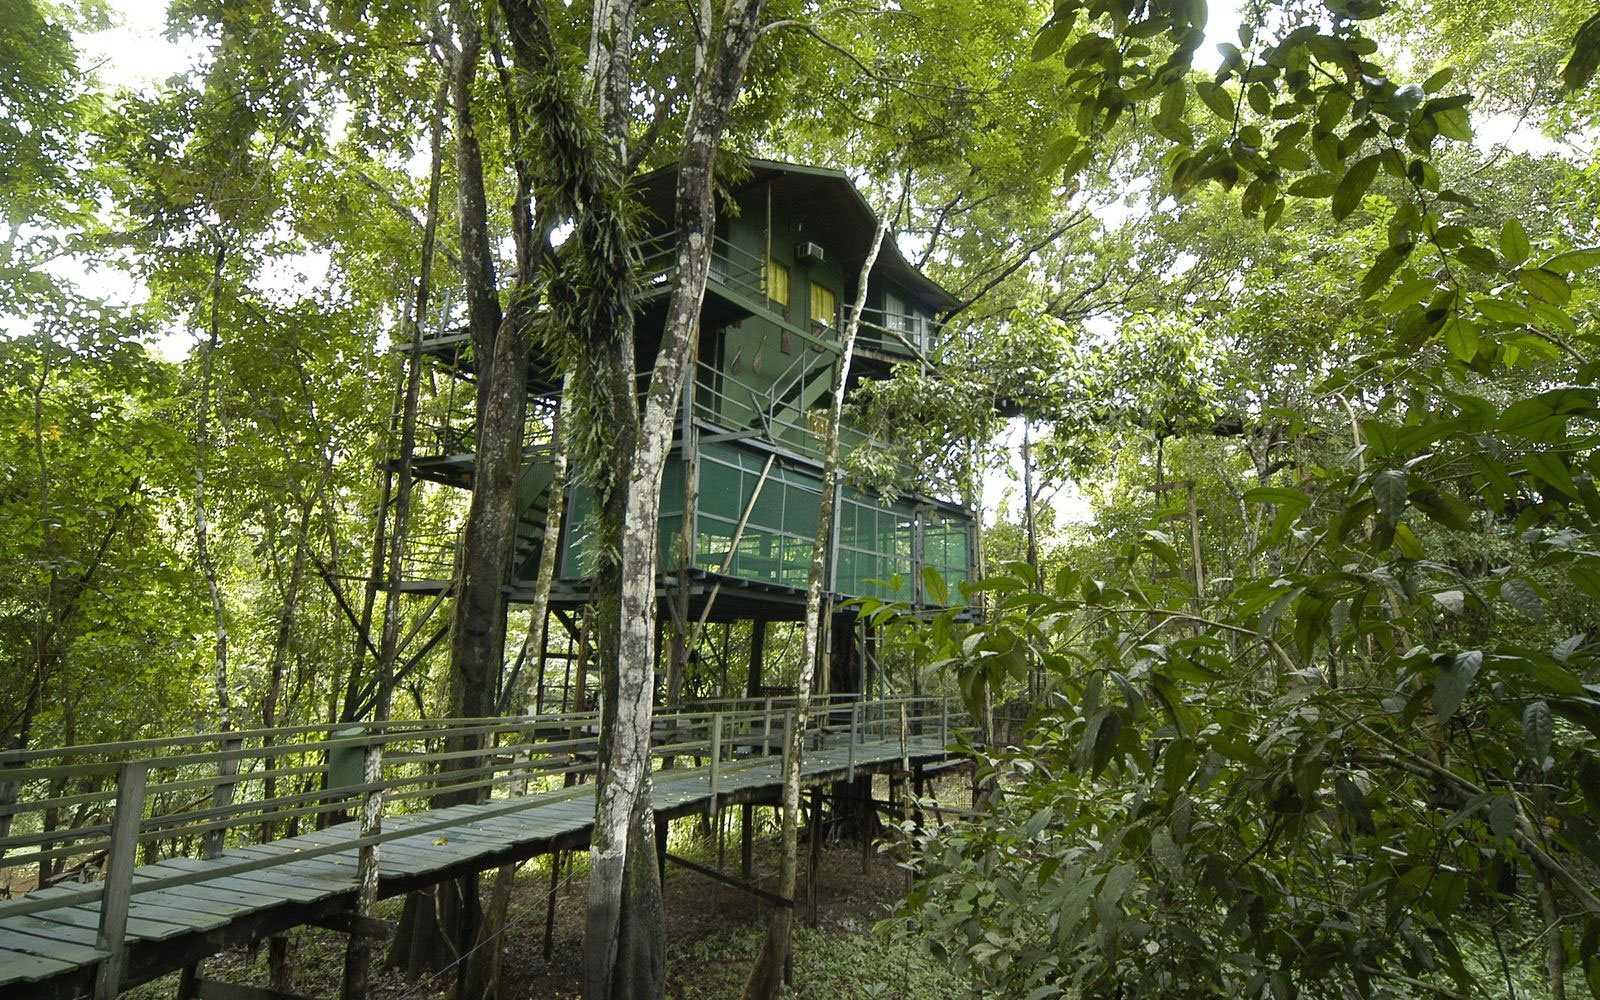 Ariau Amazon Towers Hotel, Brazilian Amazon